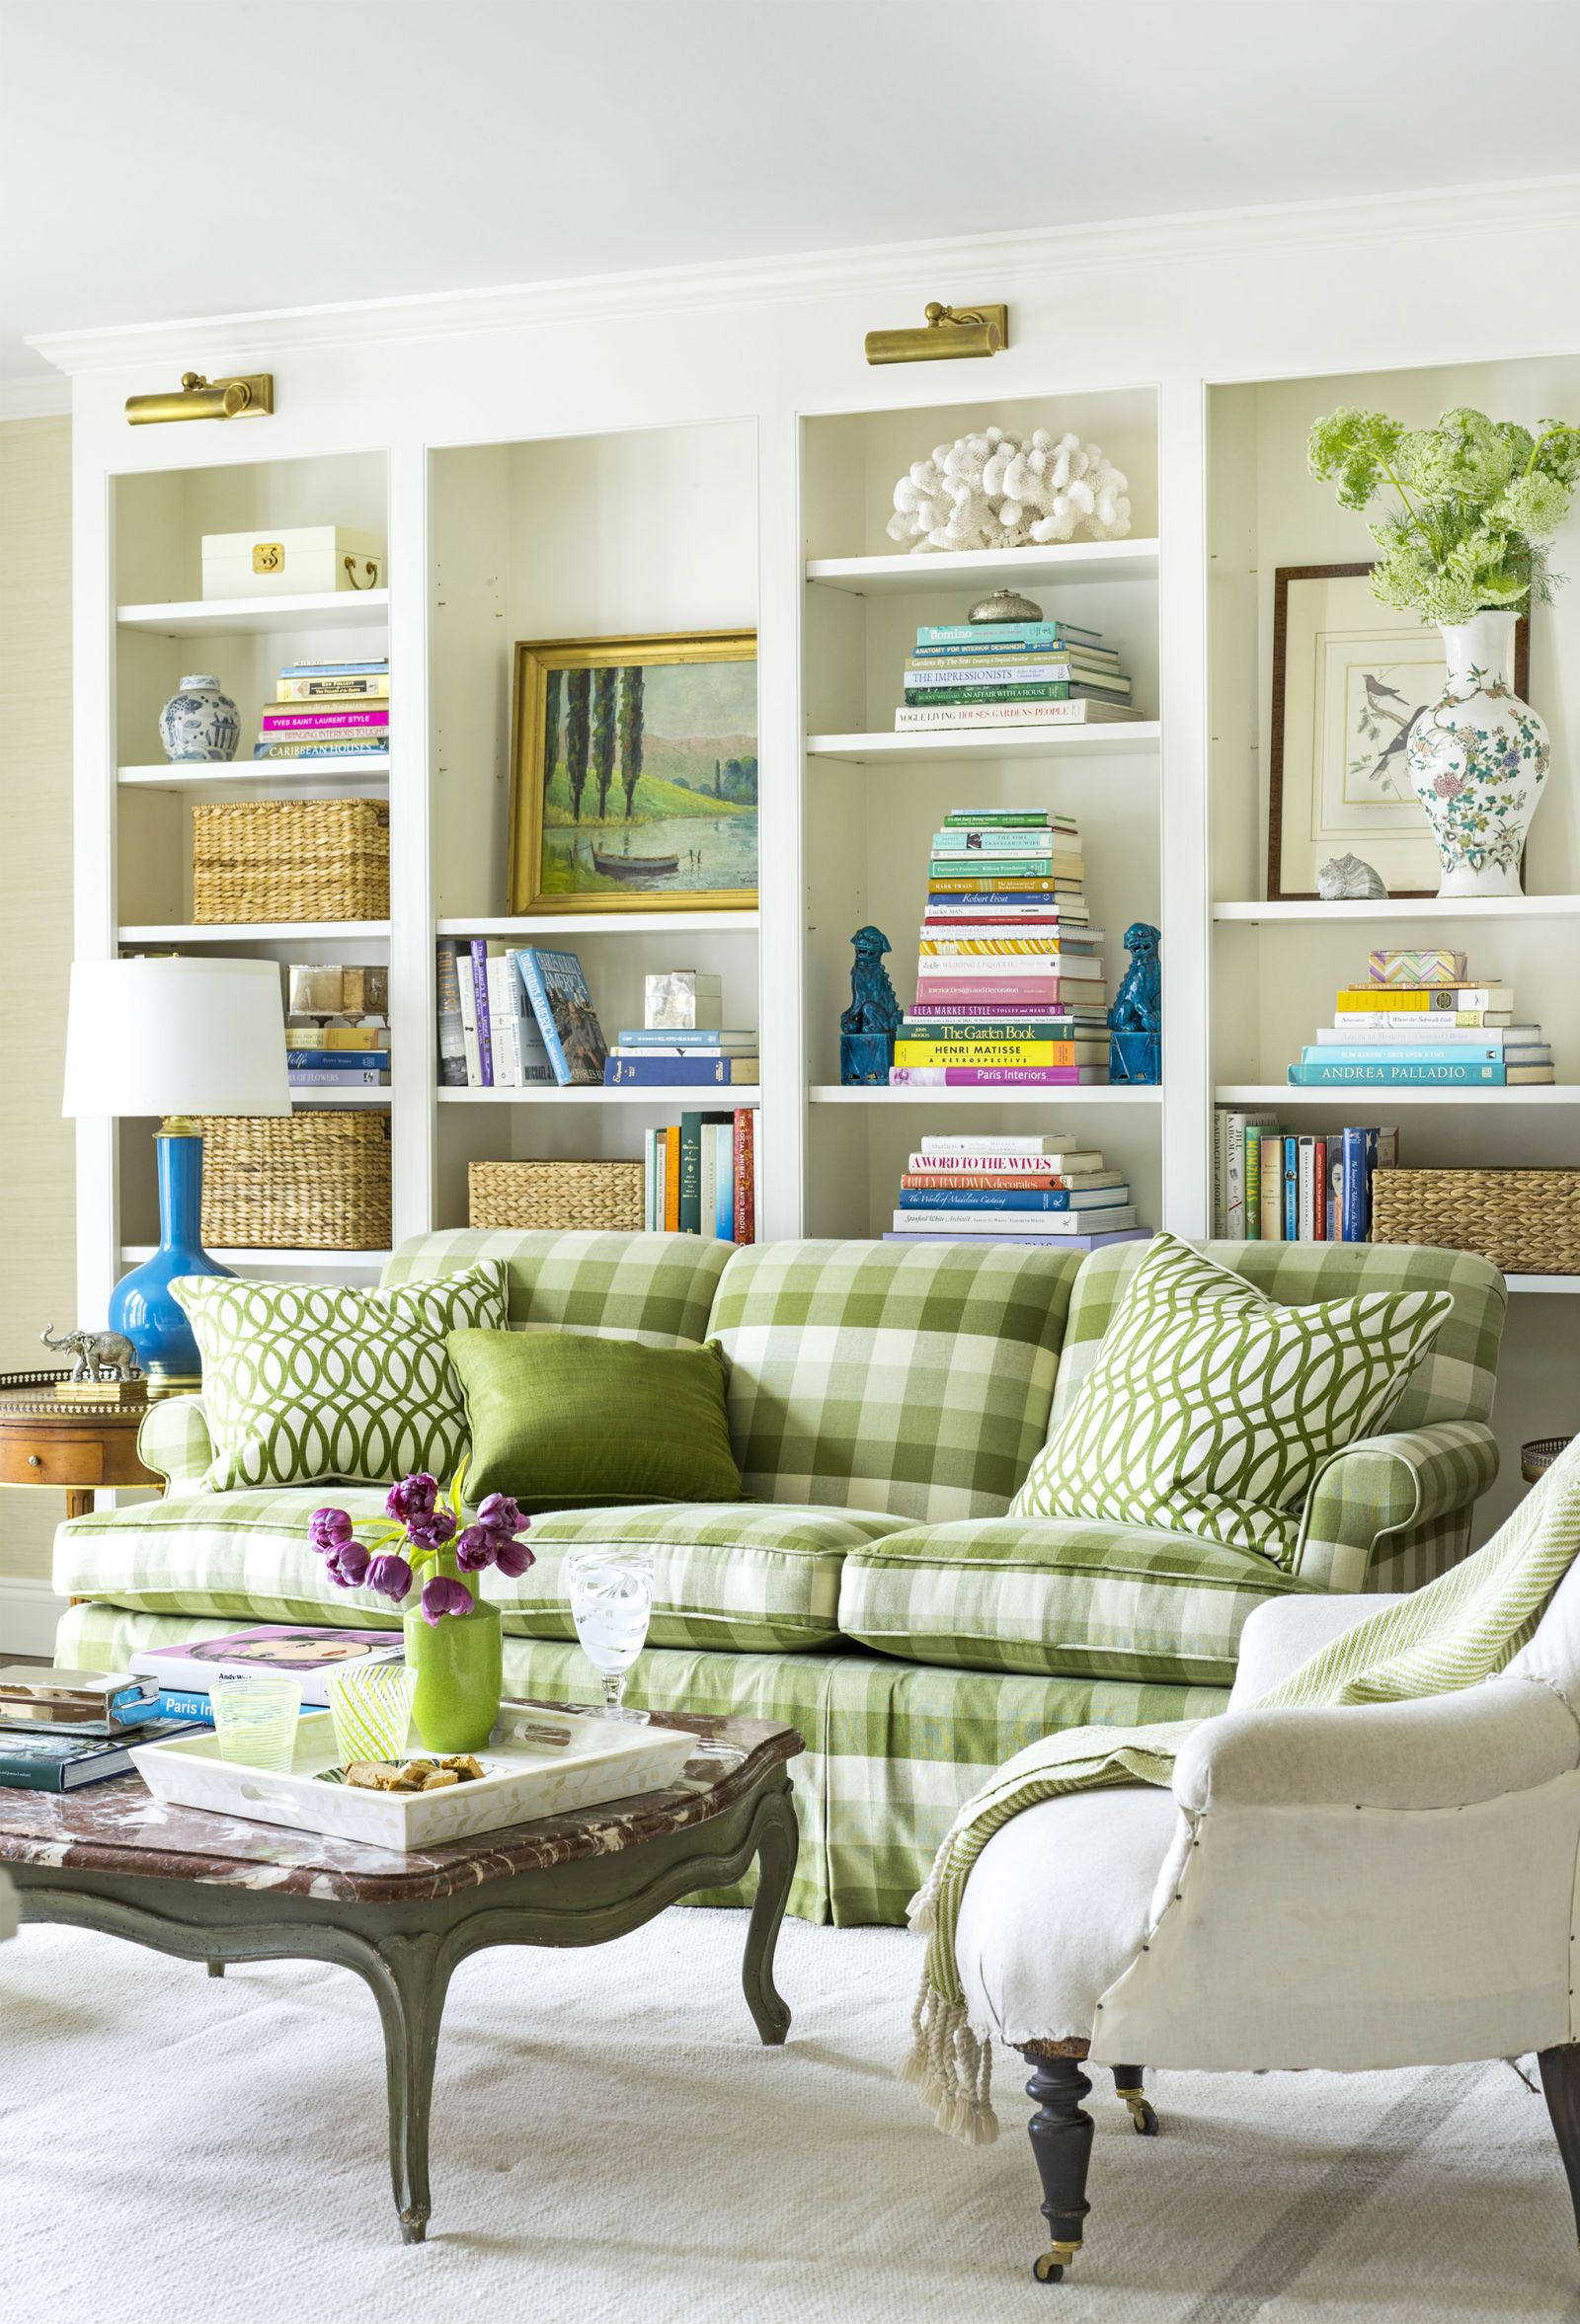 decorating with green 43 ideas for green rooms and home decor rh countryliving com